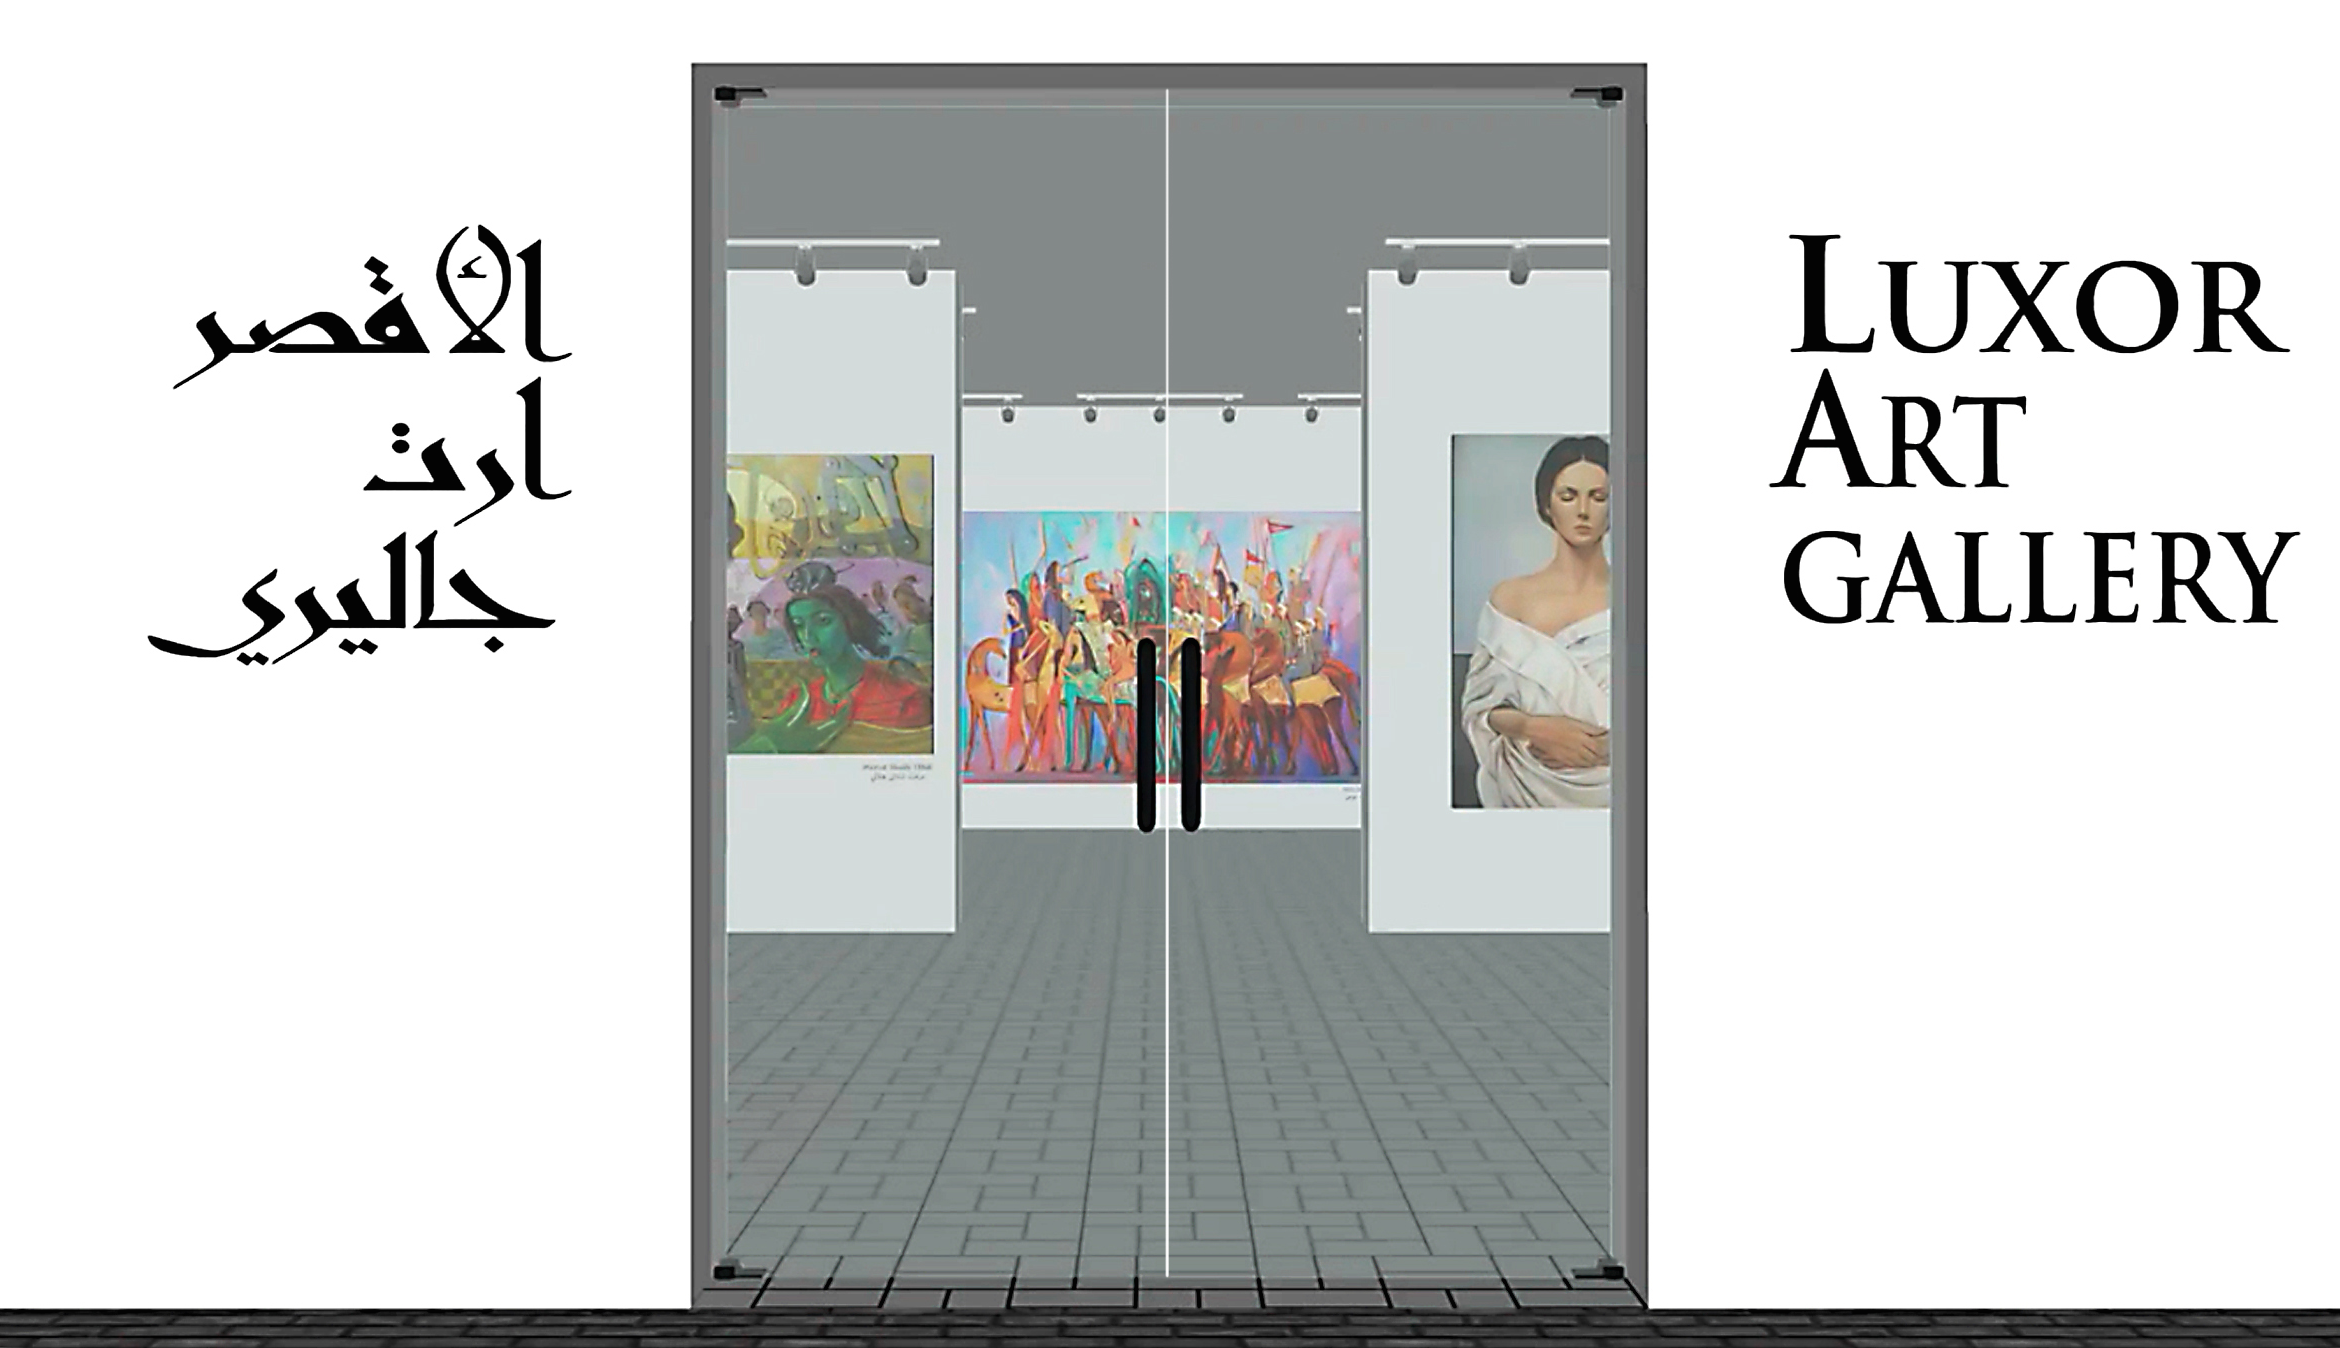 Luxor Art Gallery's Opening Exhibition is Scheduled for Fall 2018, Dates & Location to be Anannounced -